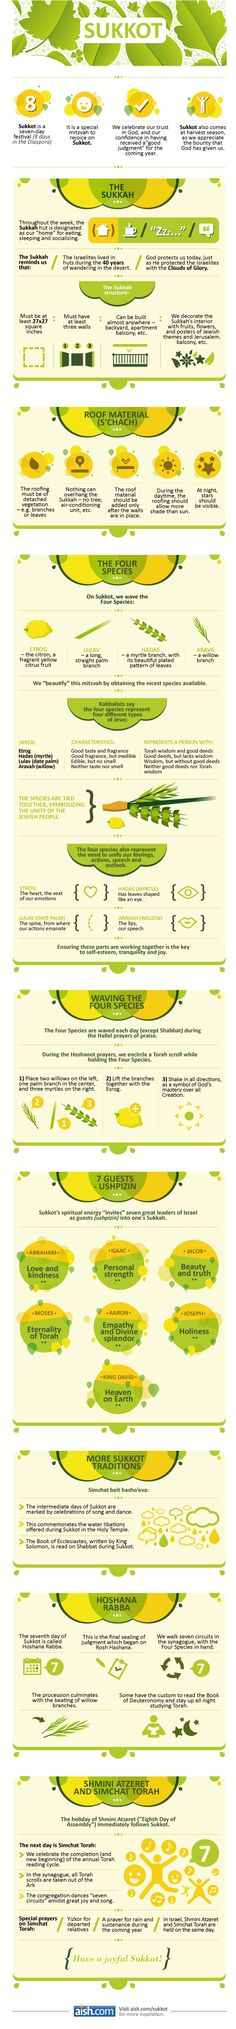 Sukkot Infographic (beguns Wednesday night, September 18, 2013) thanks Aish